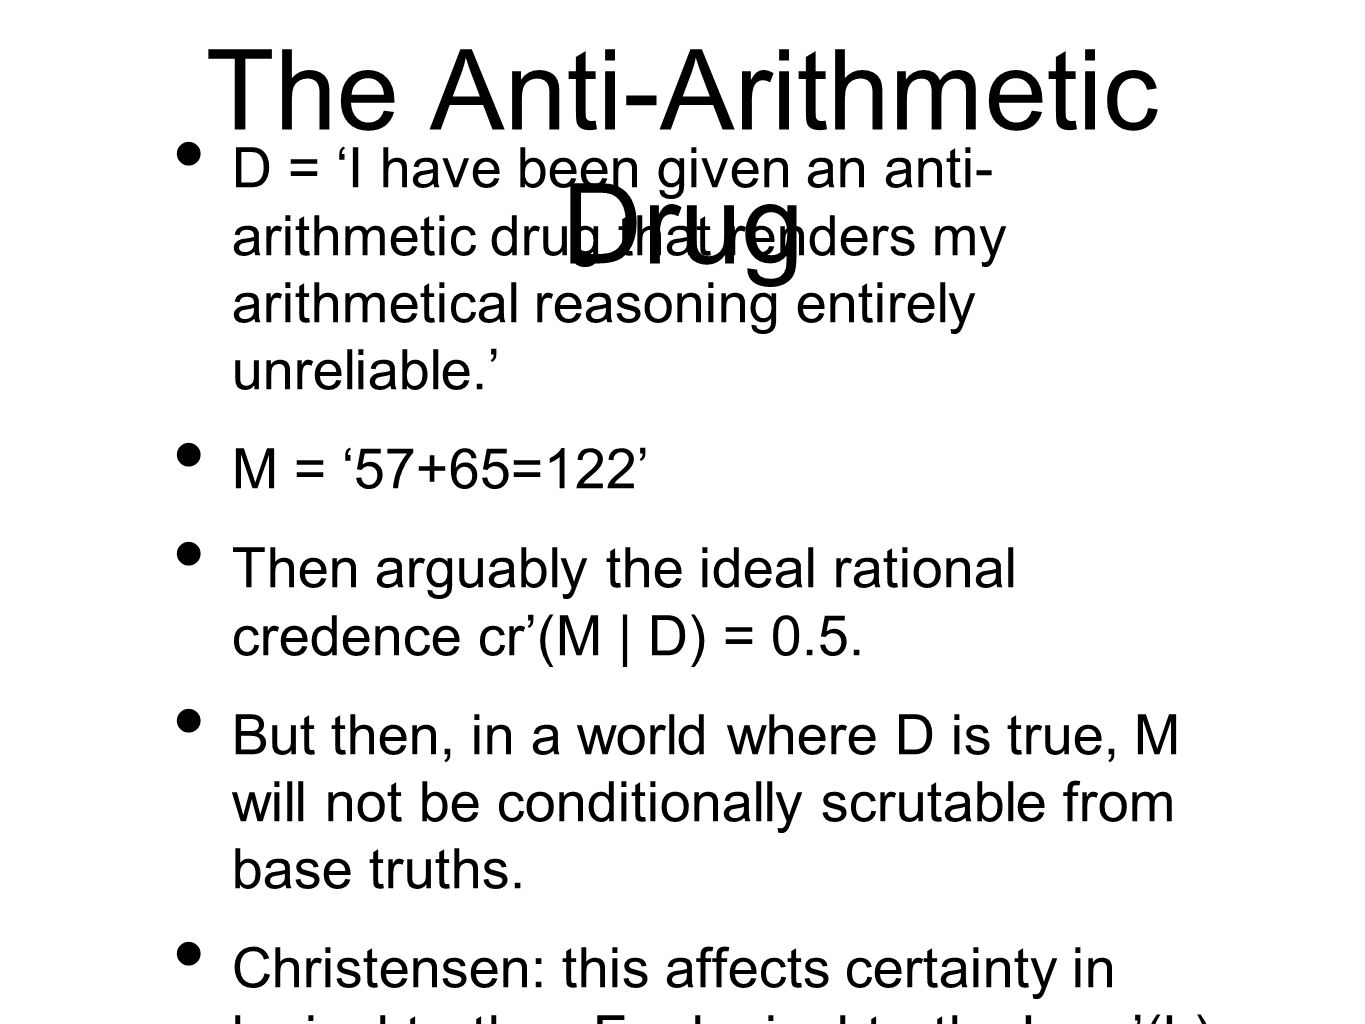 The Anti-Arithmetic Drug D = I have been given an anti- arithmetic drug that renders my arithmetical reasoning entirely unreliable.